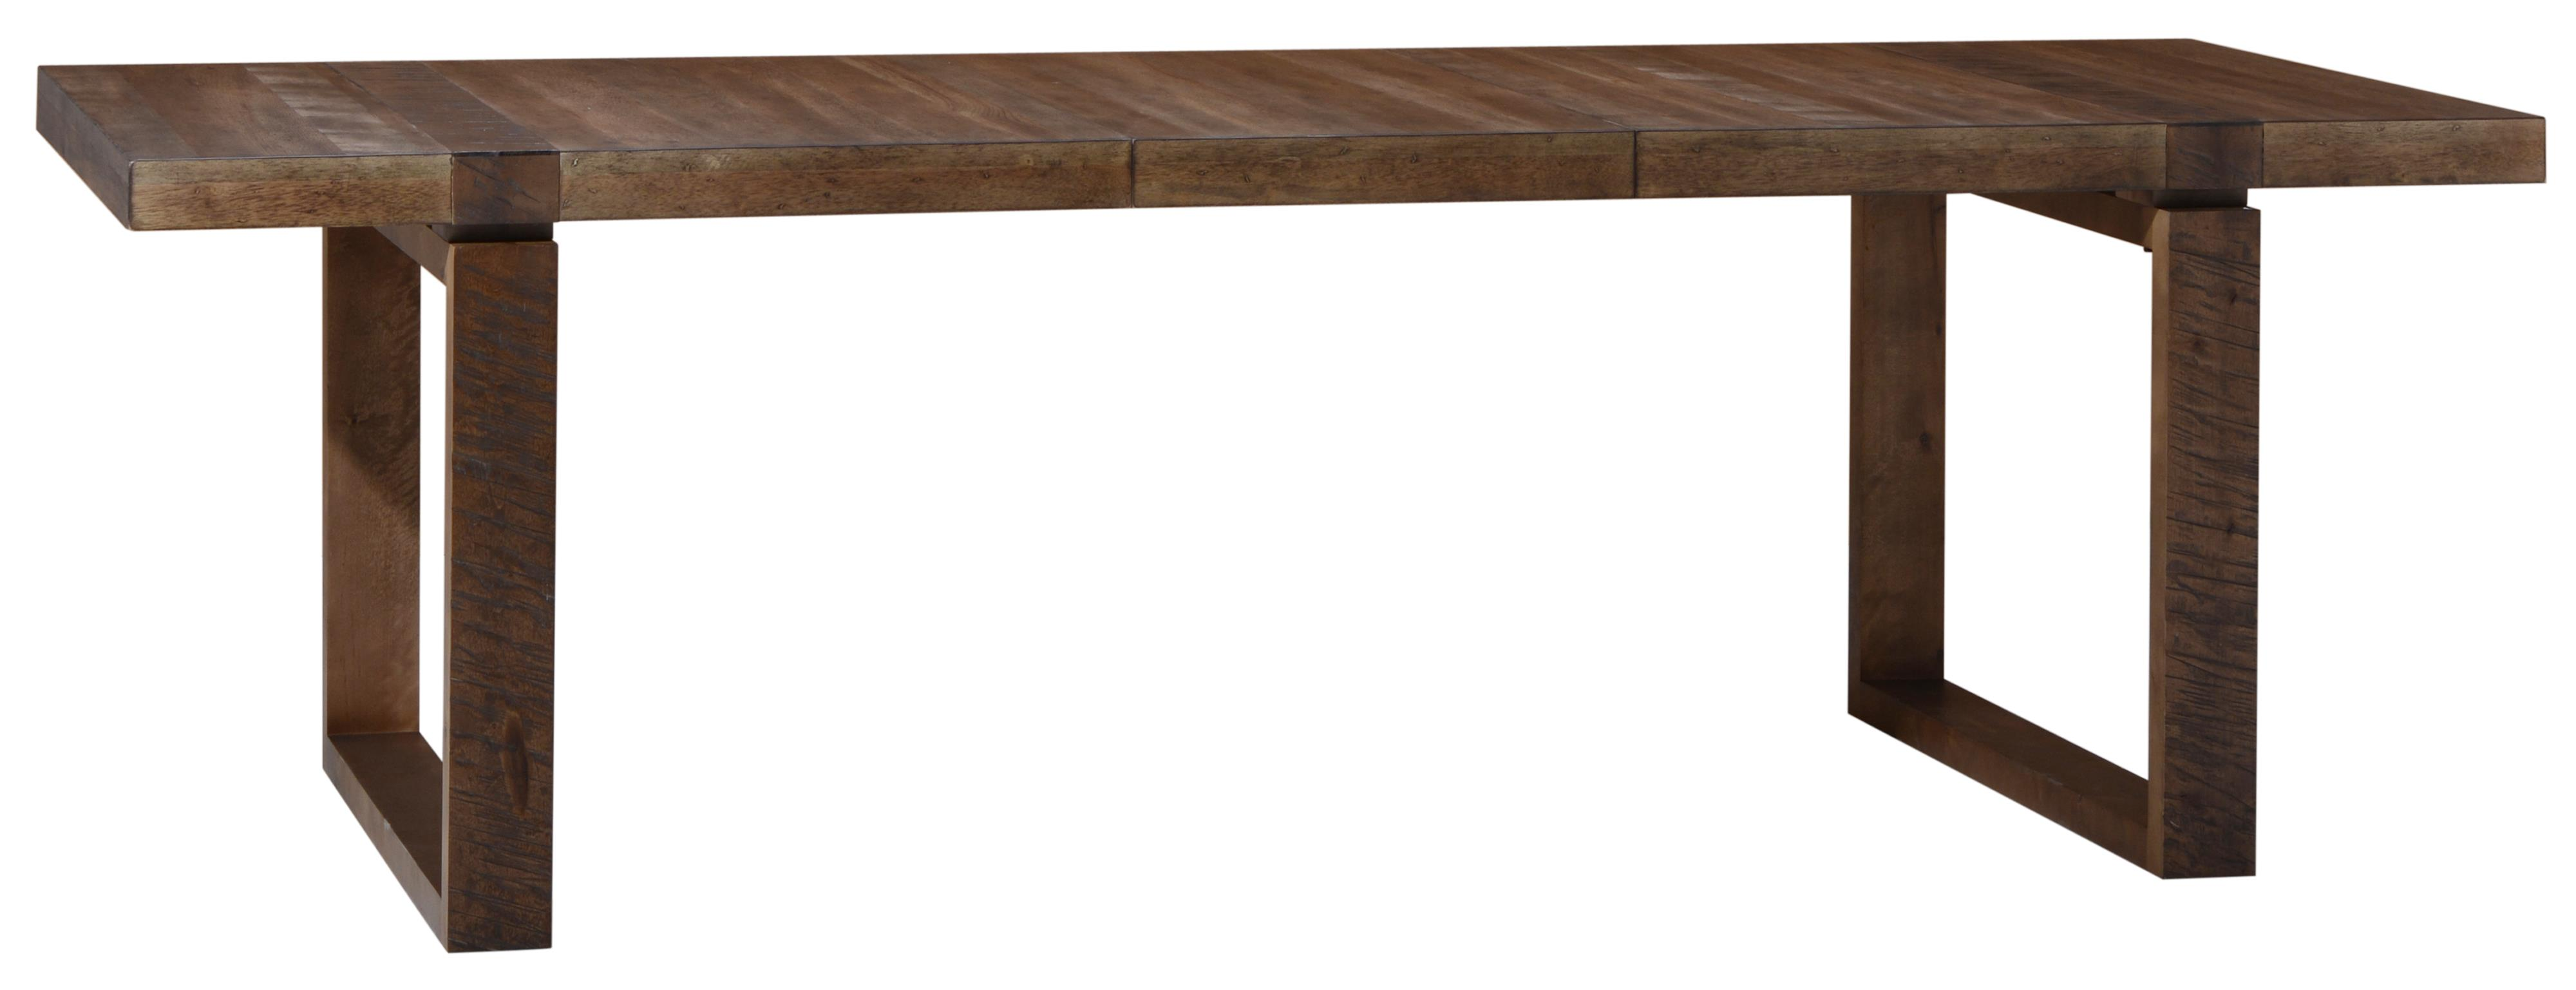 Shaw Rectangular Dining Table